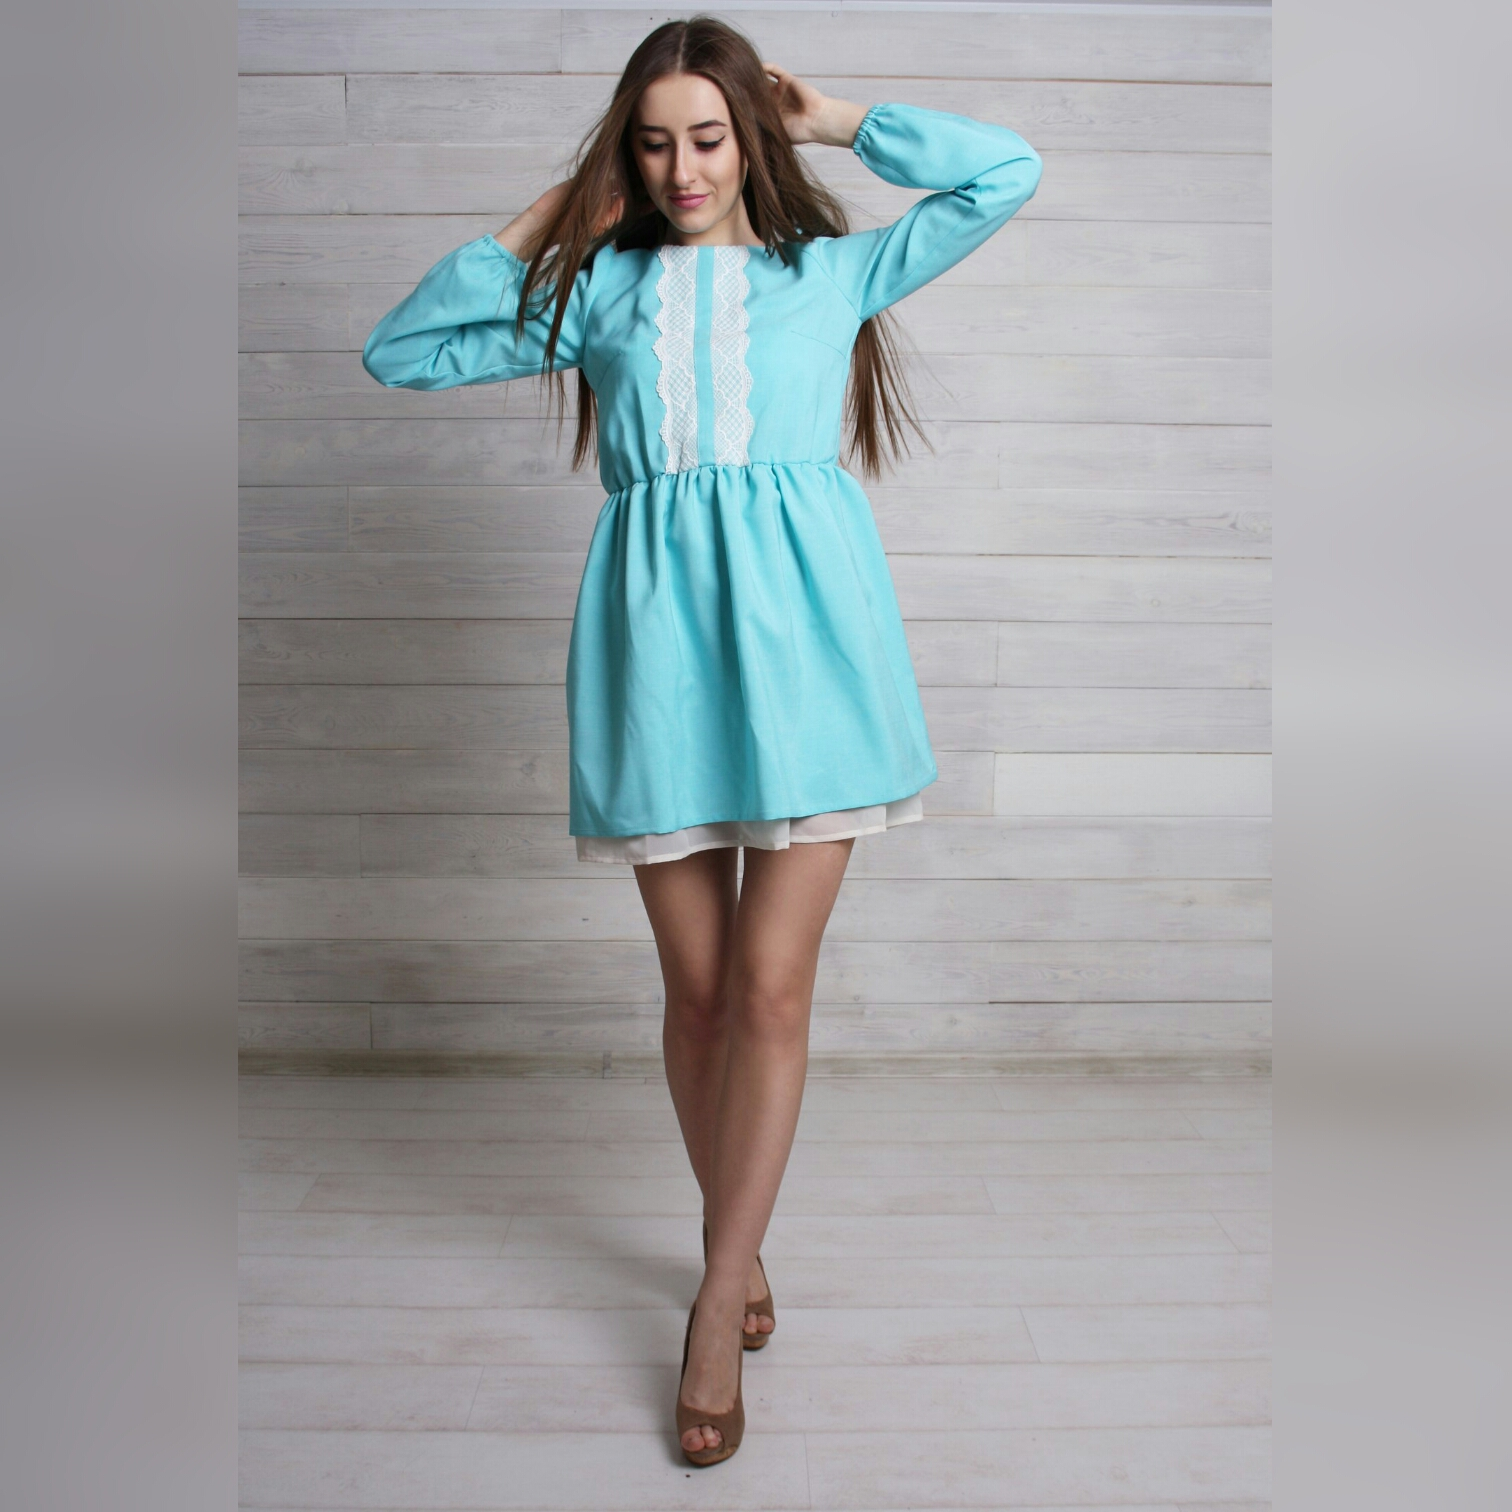 Coctailkleid AYA, Mint Coctailkleid AYA, Mint 09 01